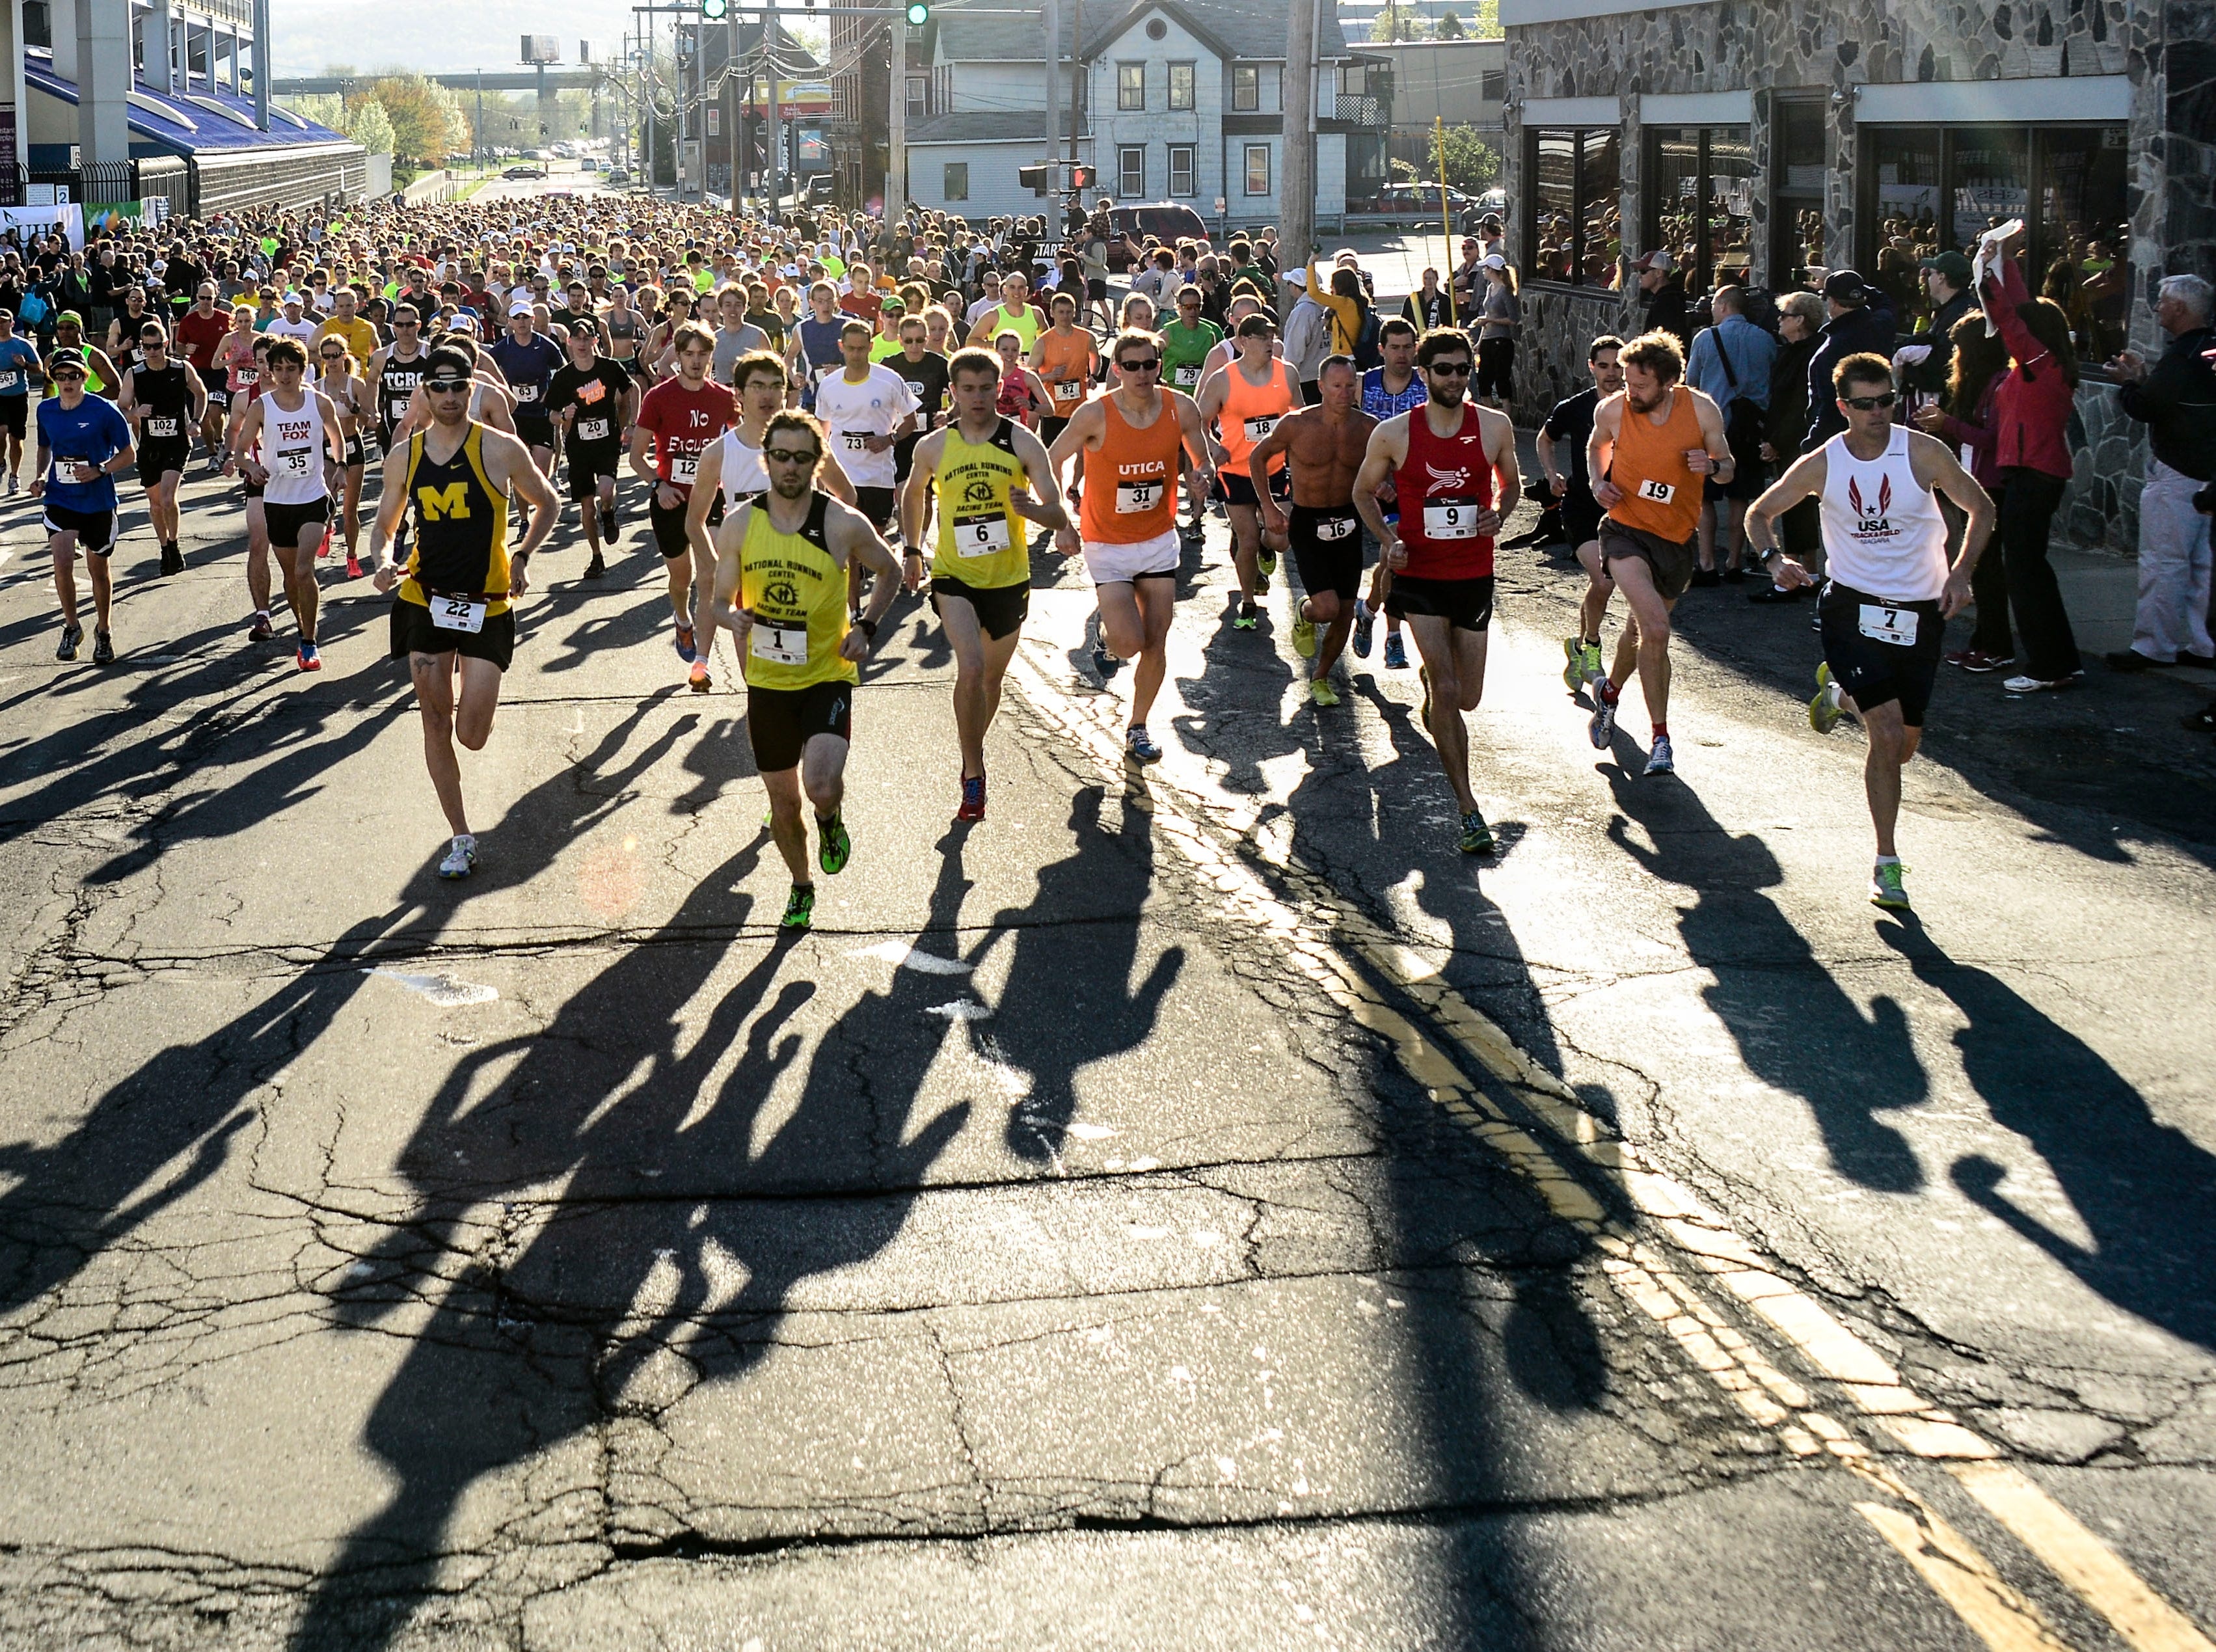 2013: Runners start on the 13.1 mile Greater Binghamton Bridge Run on a warm Sunday morning in the Southern Tier.